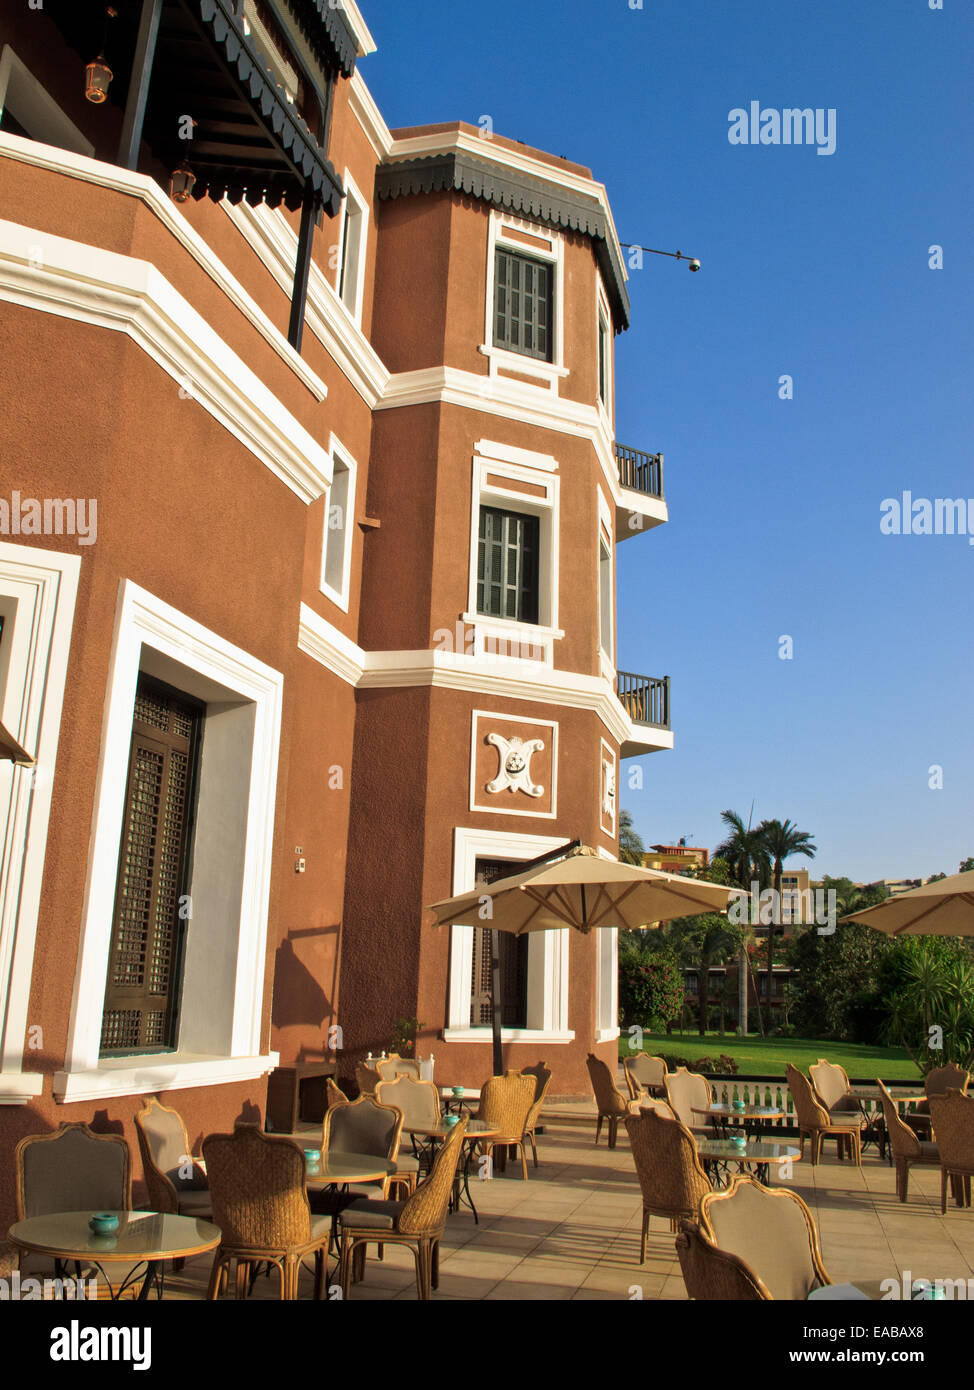 The Old Building Of The Sofitel Legend Old Cataract Hotel Aswan